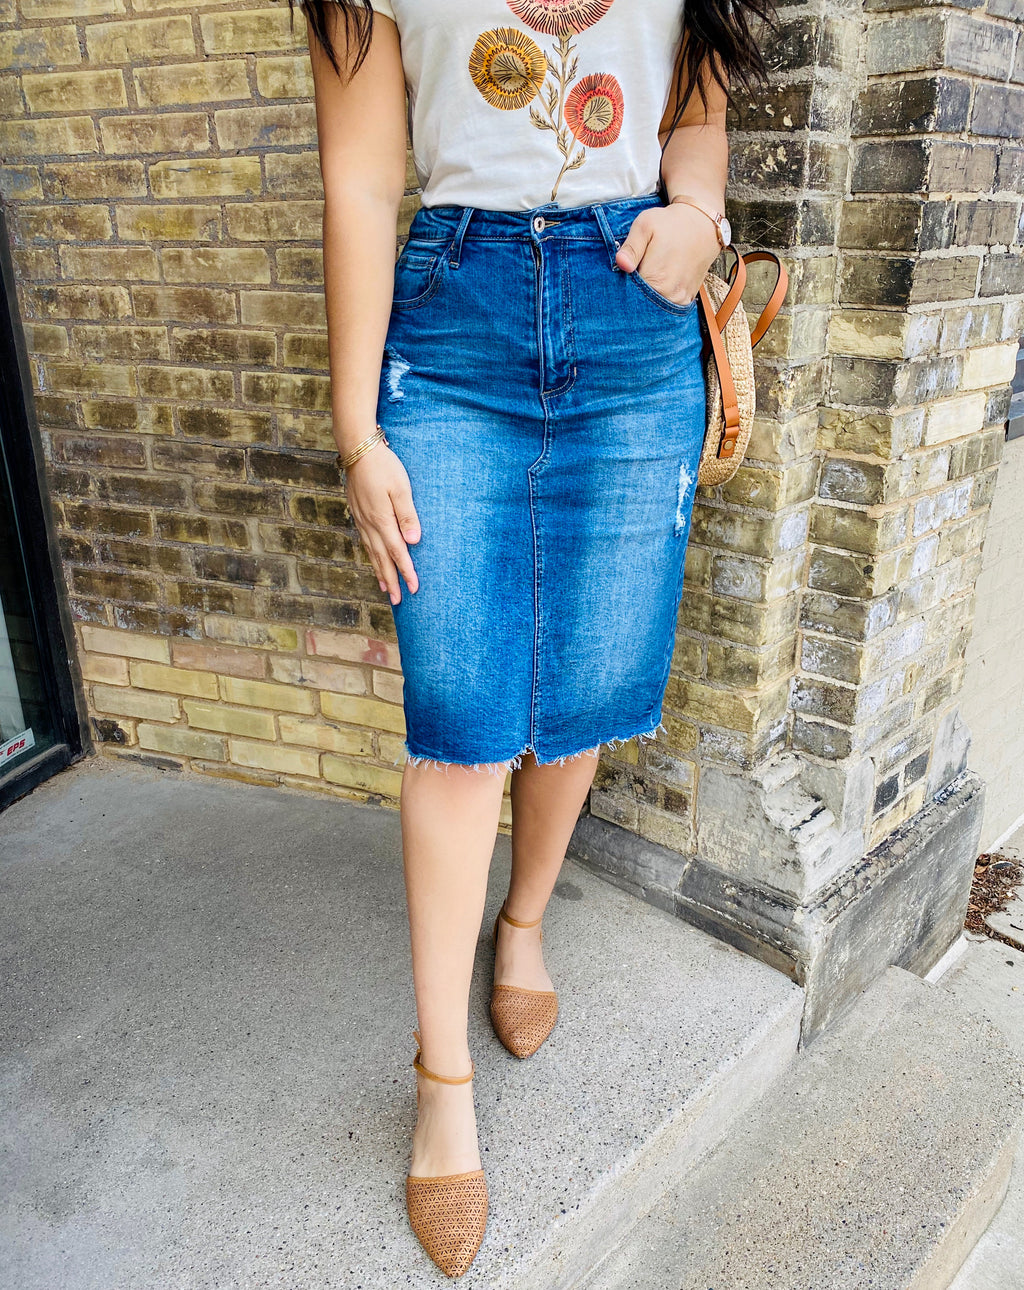 Manhattan Denim Skirt - The Darling Style - Modest Dresses